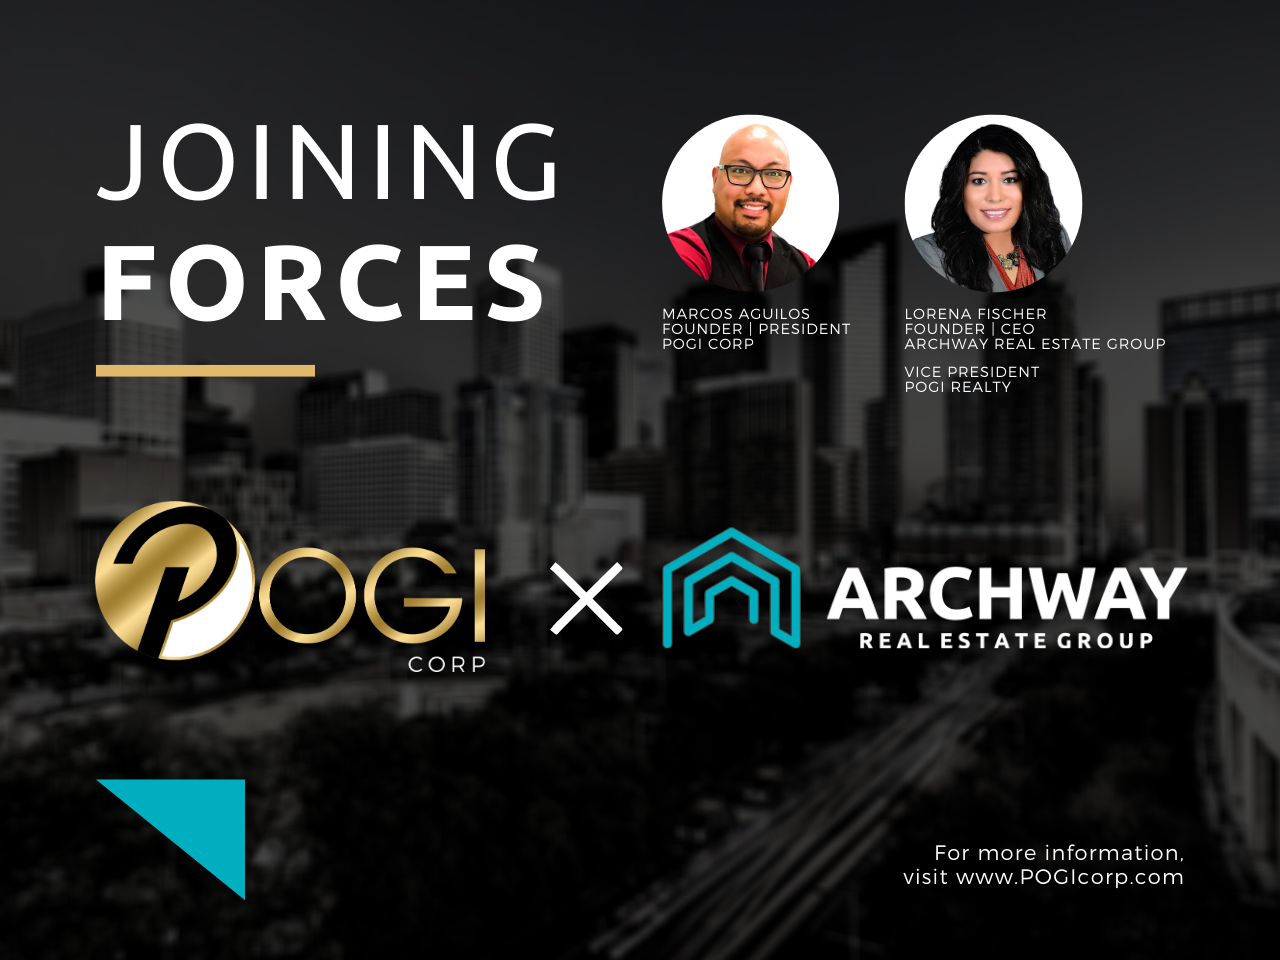 Pogi Corp Joins Forces With Archway Real Estate Group